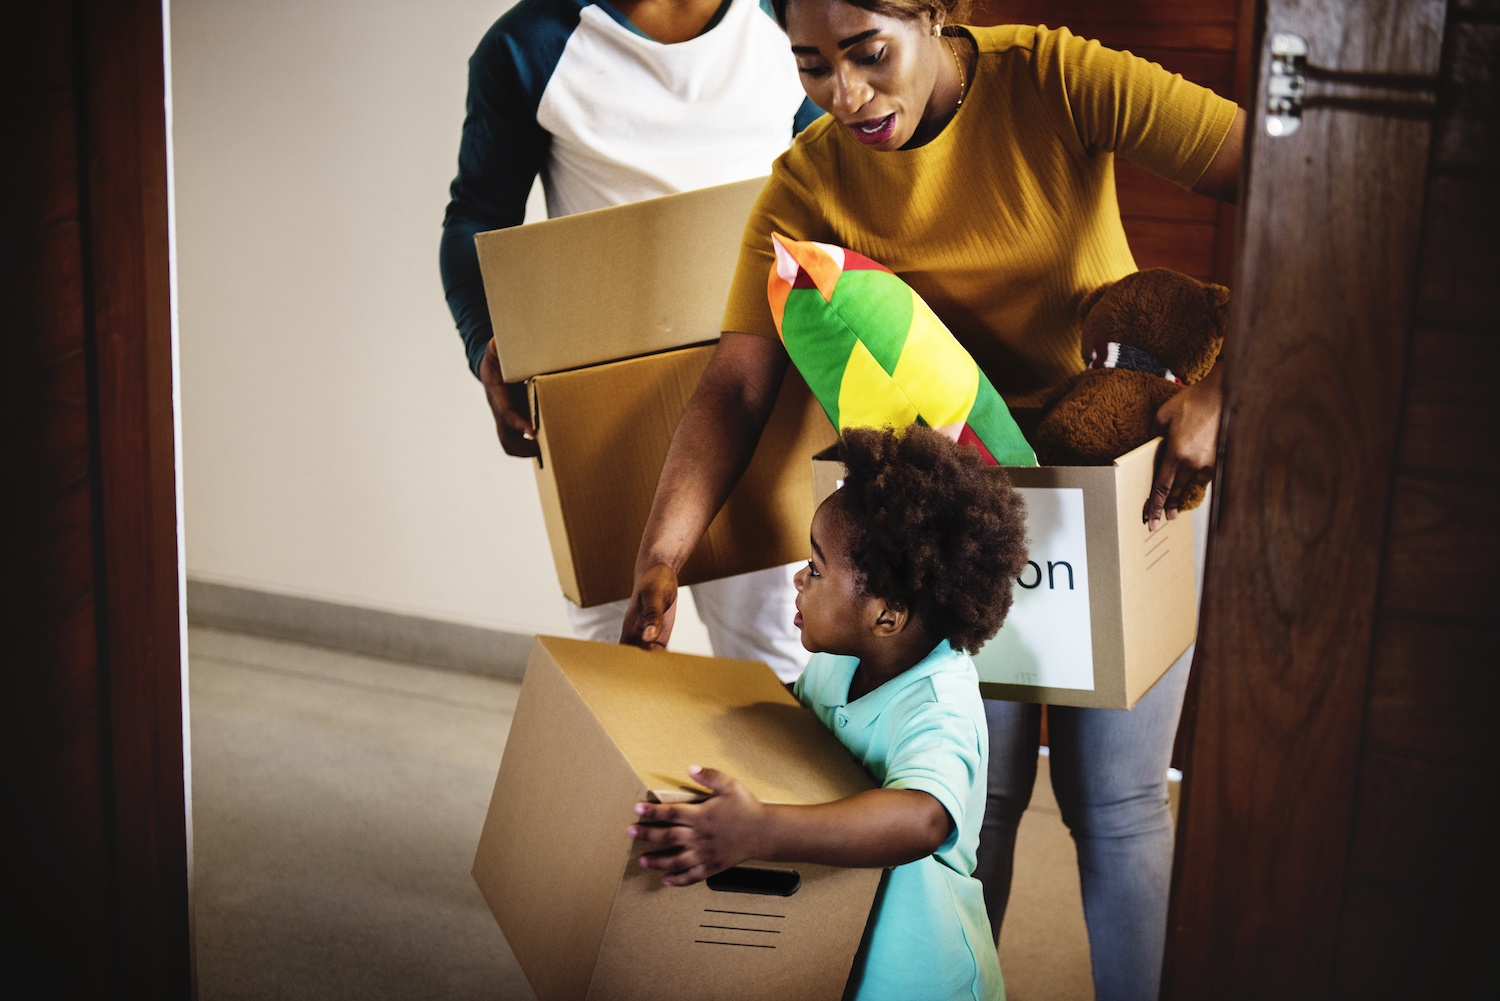 when you're ready to move, talk to a trusted local realtor first